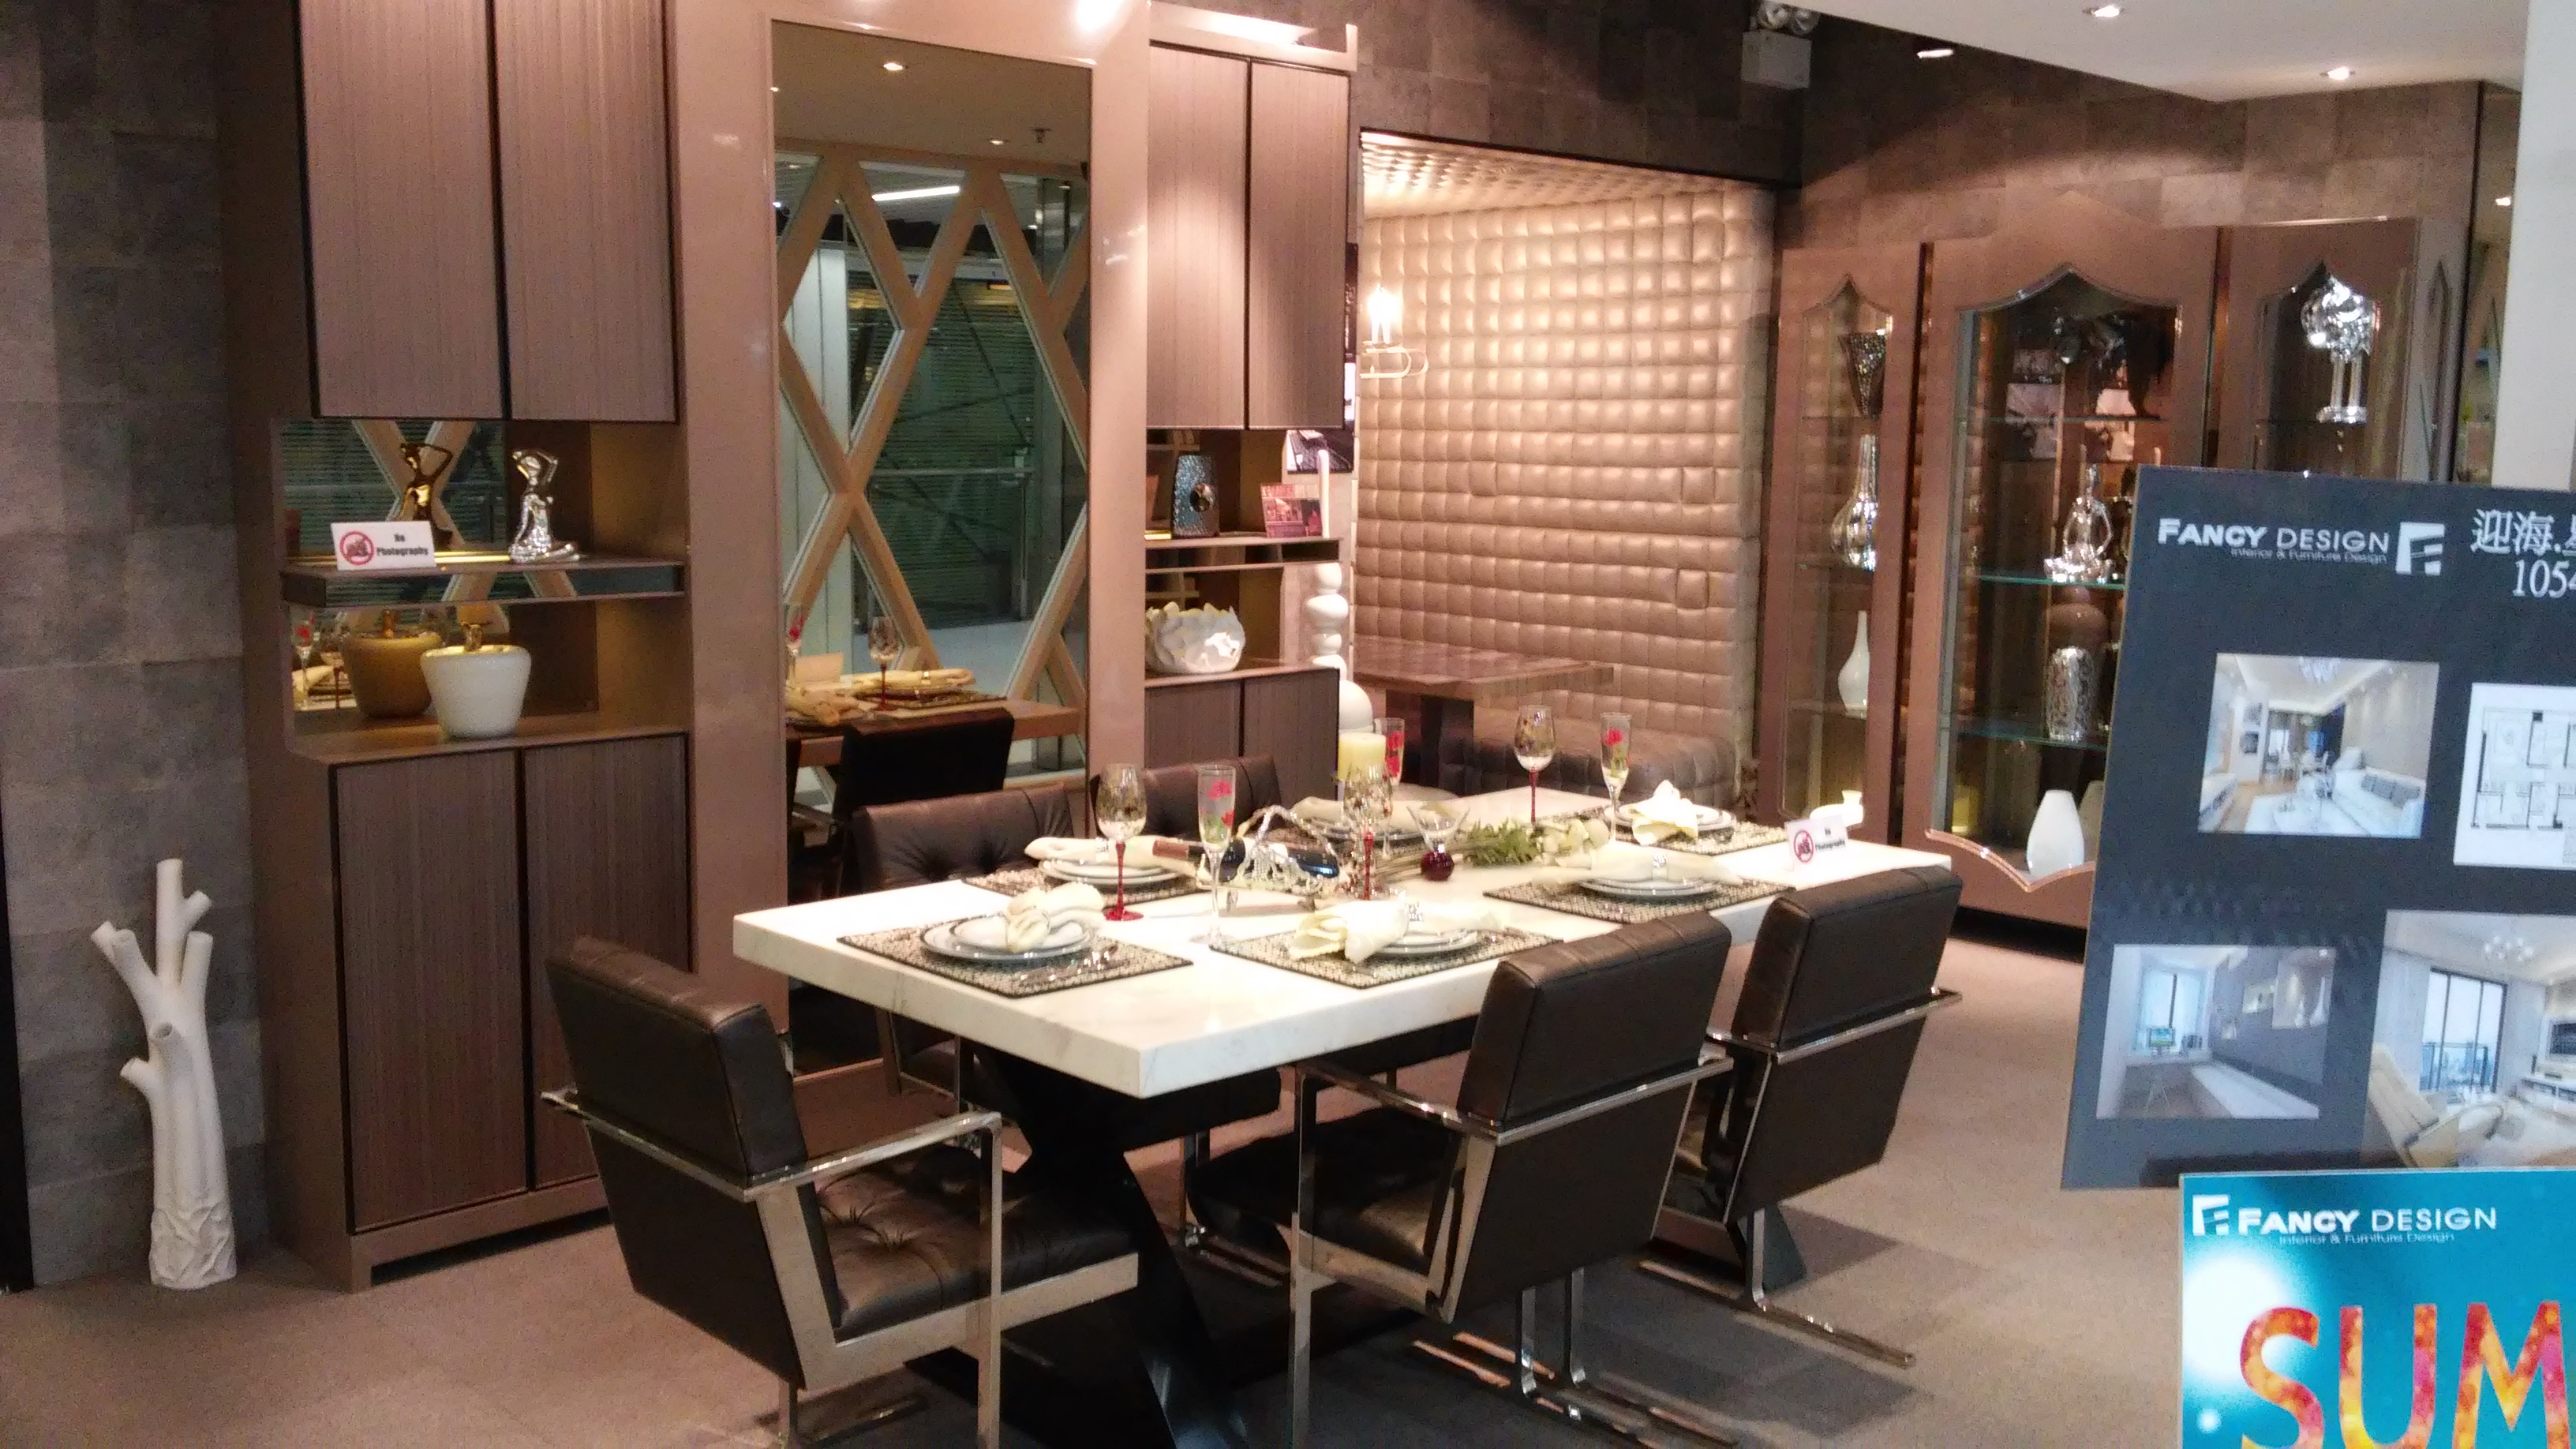 File:HK Kln Bay Emax Home Shopping Mall Furniture Shop Dinning Room Table N  Chairs